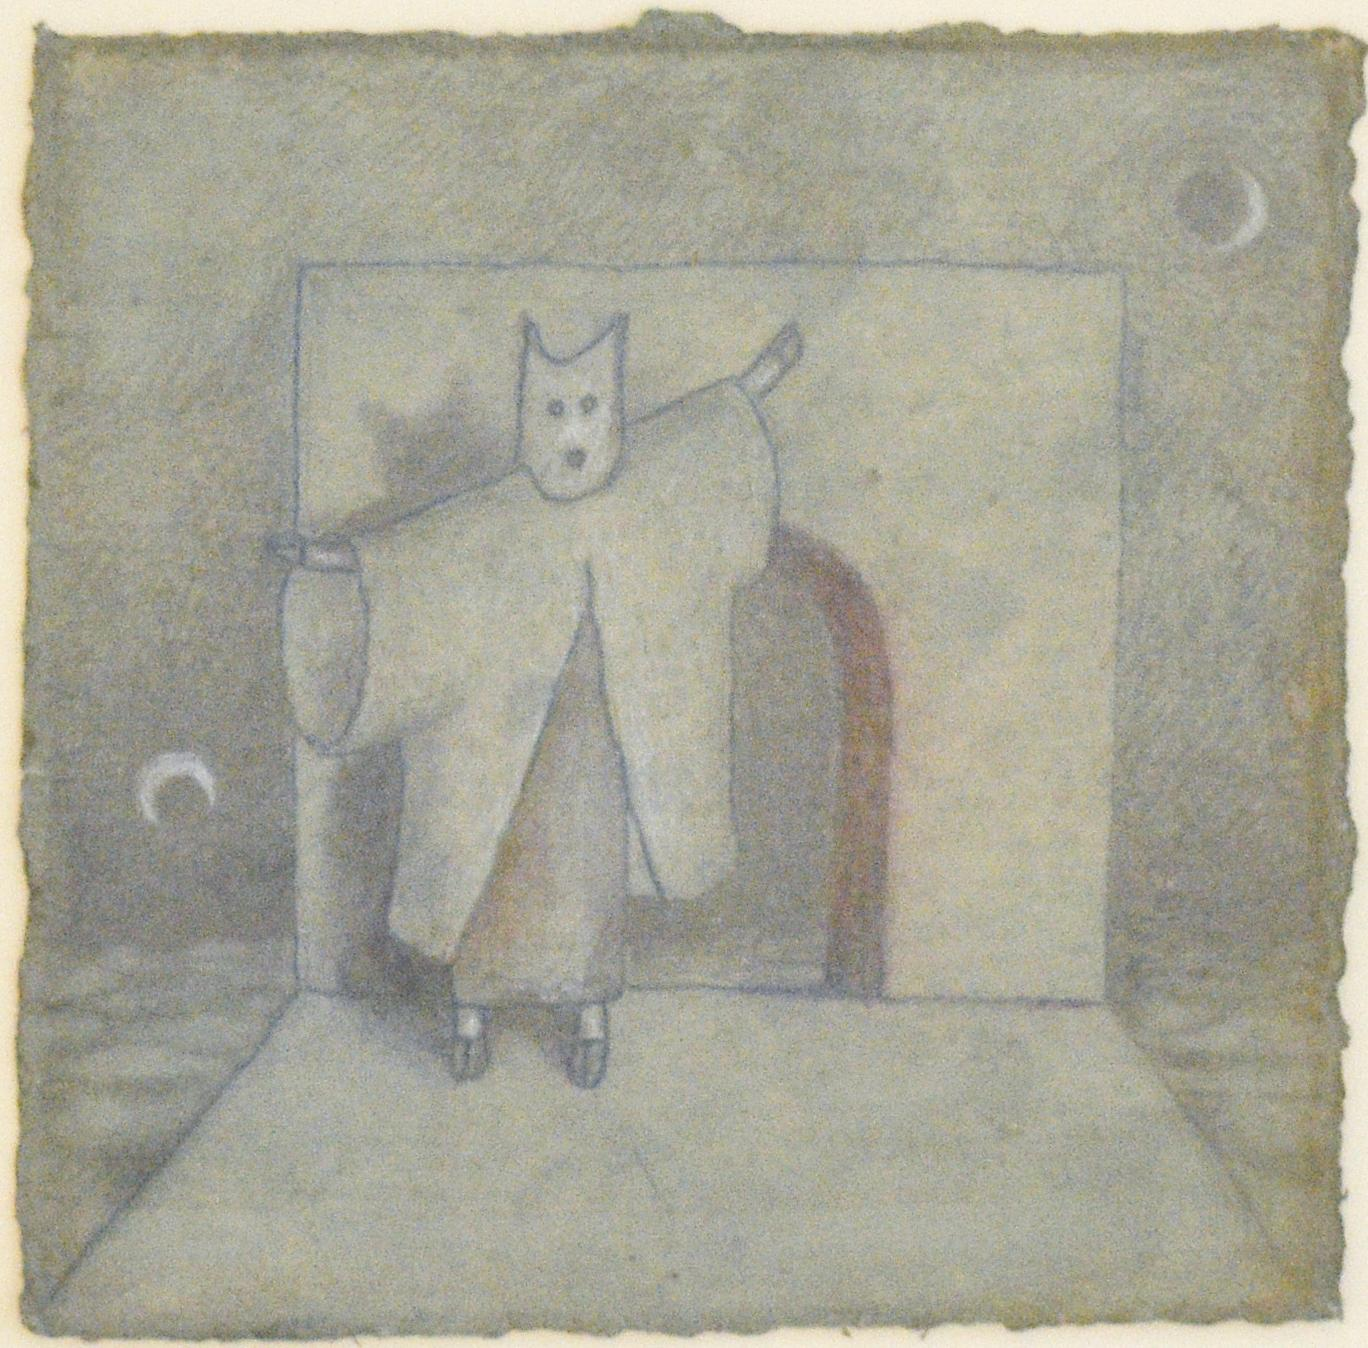 Der Fled Maus (Figurative Drawing of Costumed Man with Moon on Teal Paper)